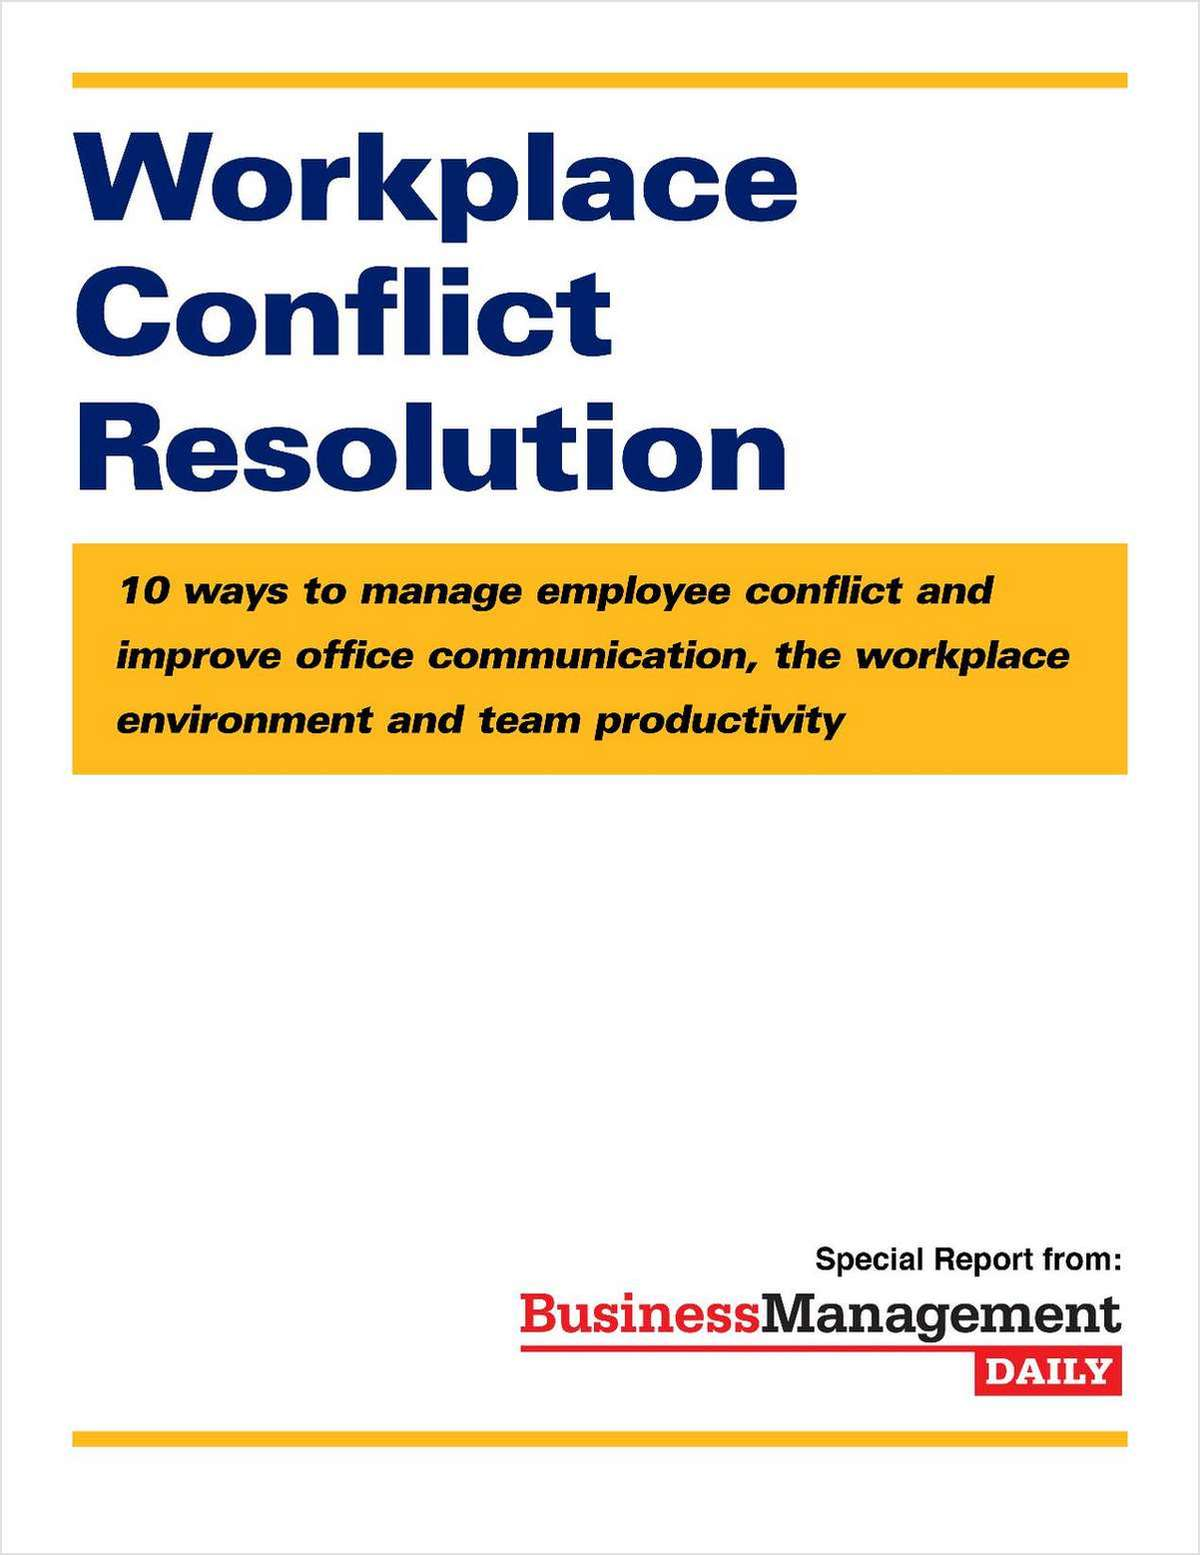 Workplace Conflict Resolution Free Report